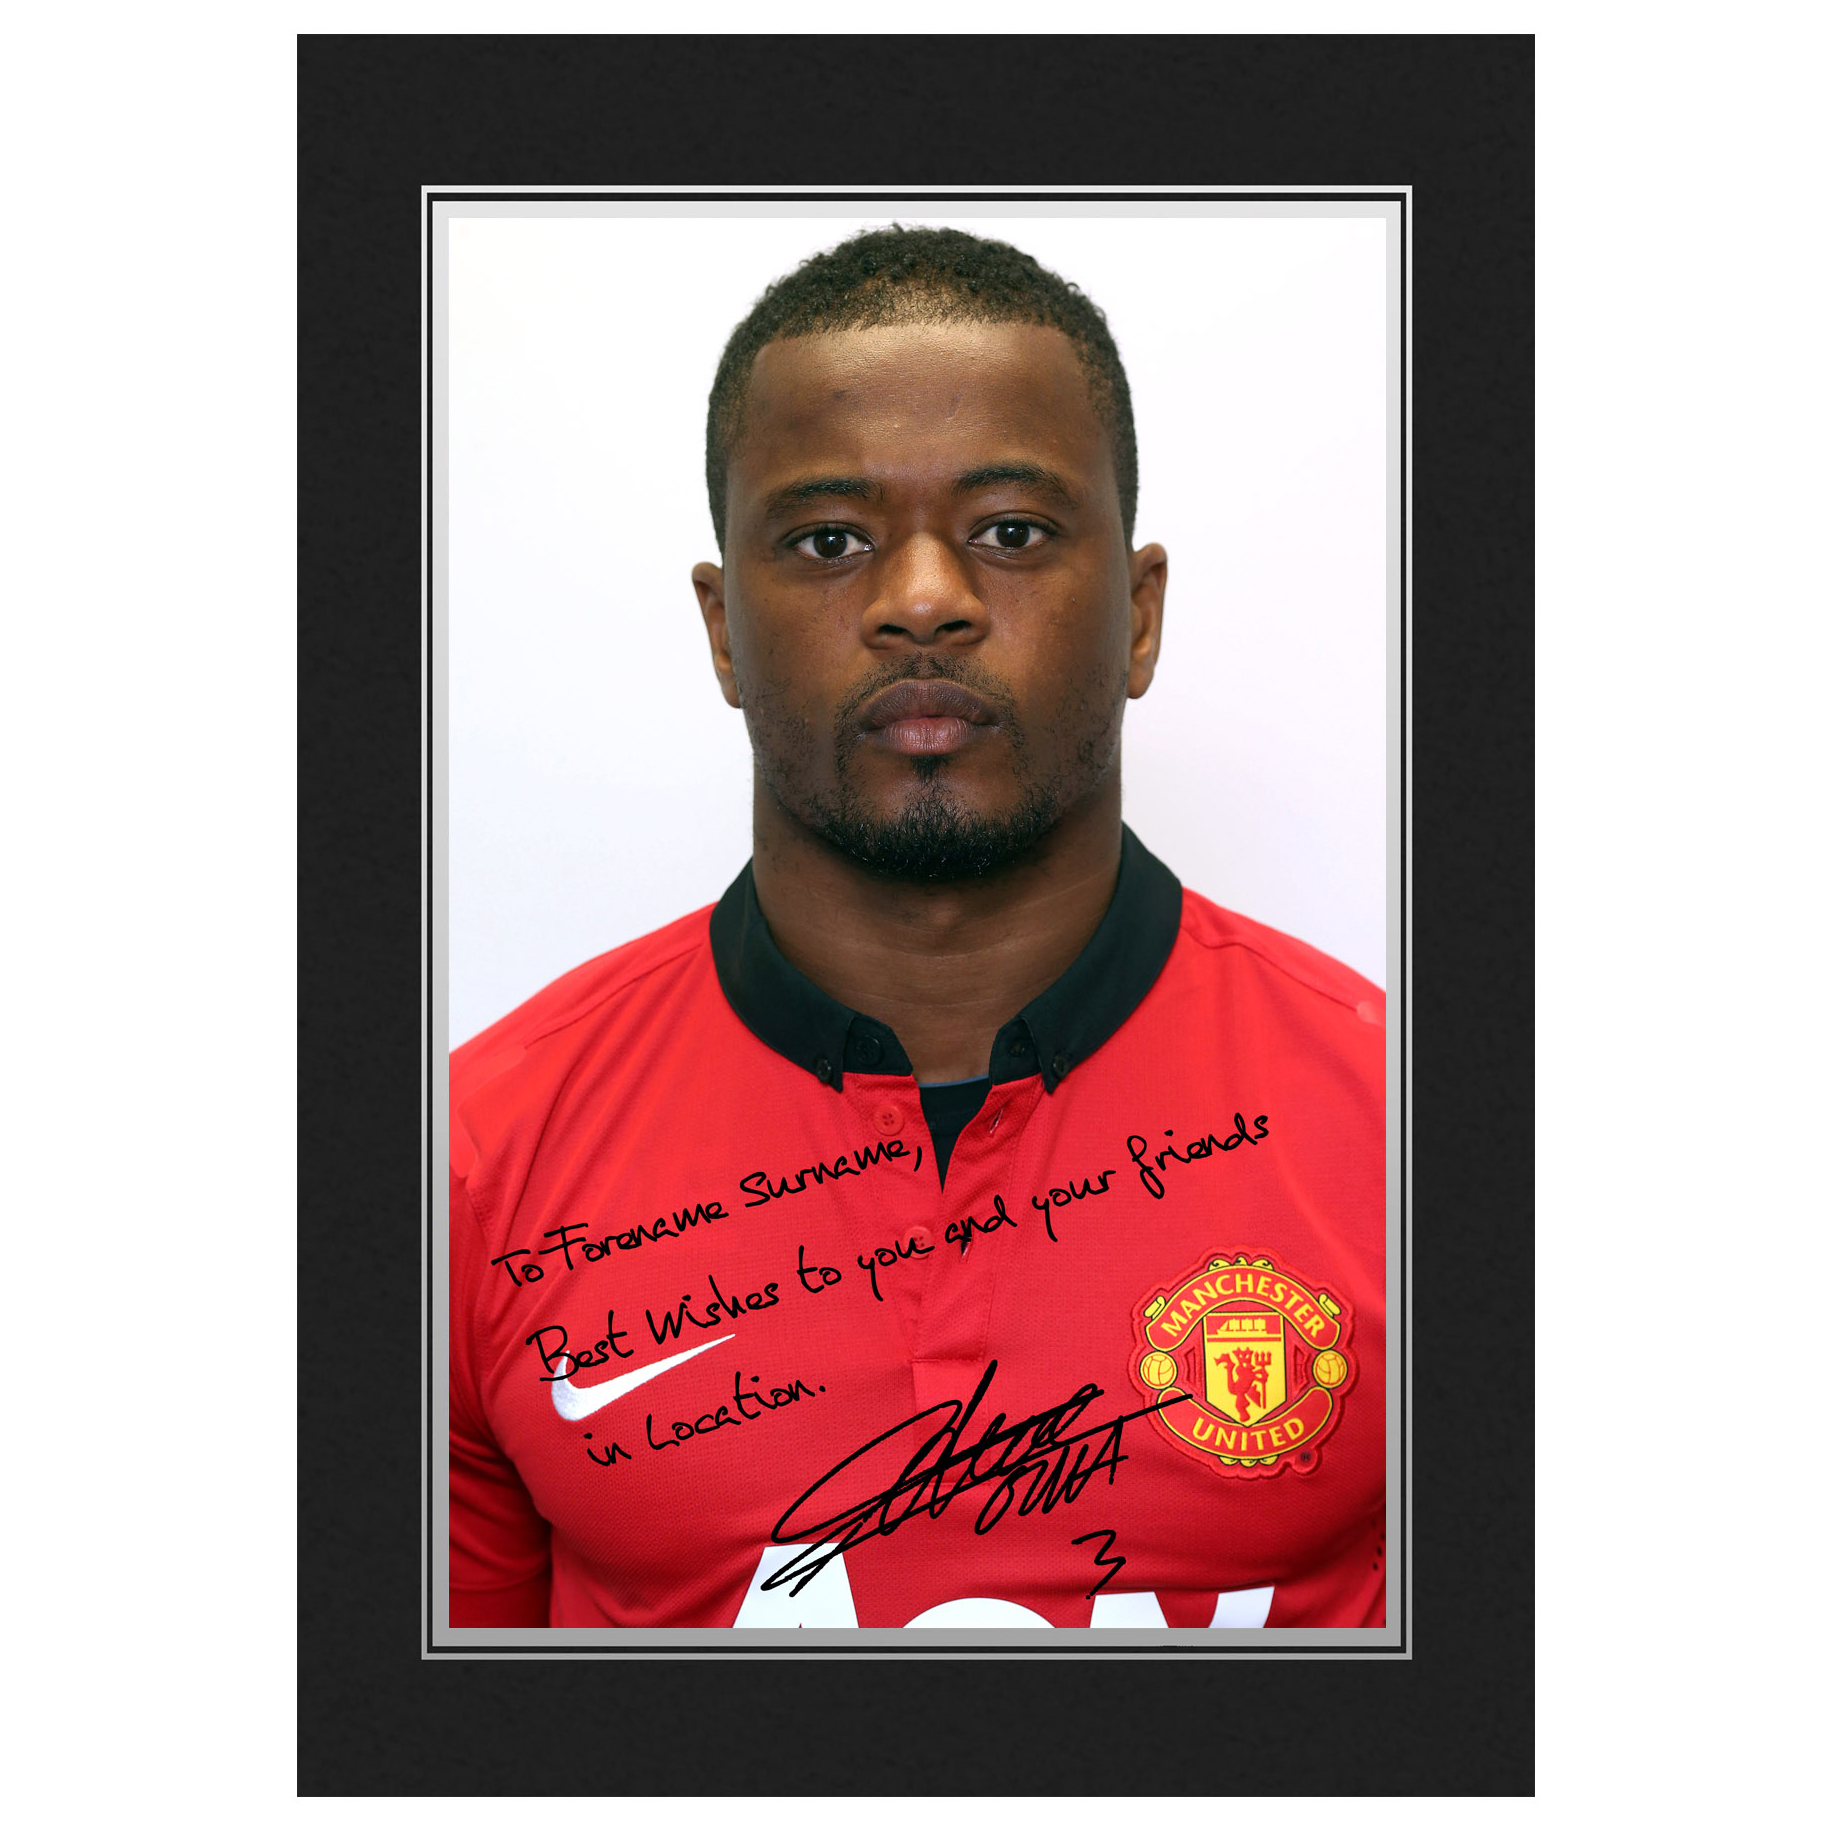 Manchester United Personalised Signature Photo In Presentation Folder - Evra